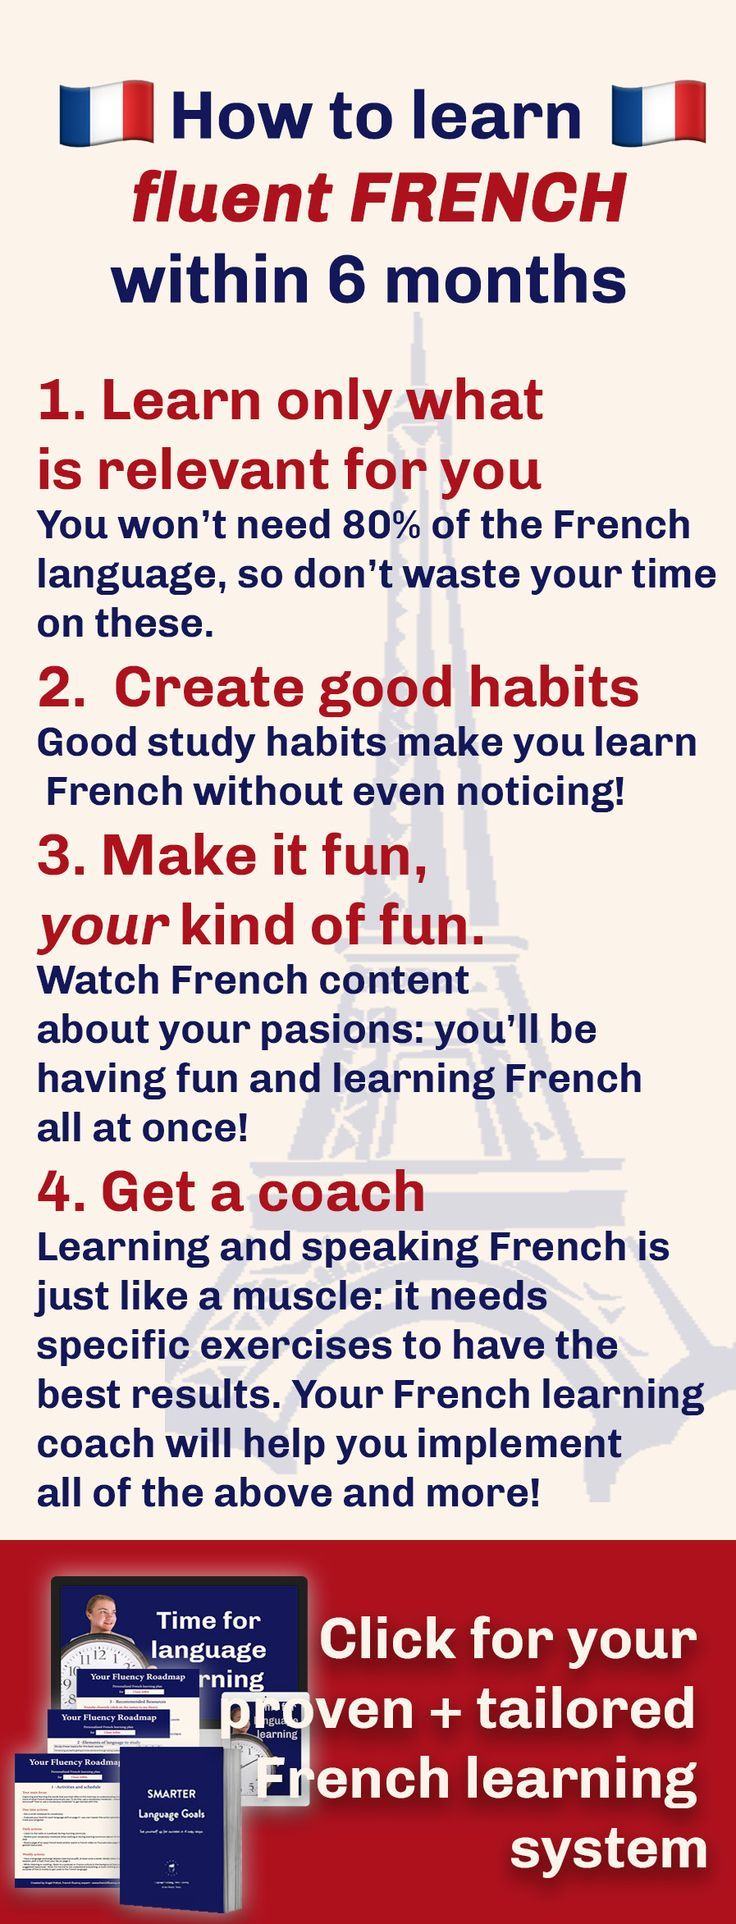 Looking To Learn French Fast Thanks To This Proven Tailored System French Learning Will Be Fast Easy An Learn French How To Speak French Learn French Fast